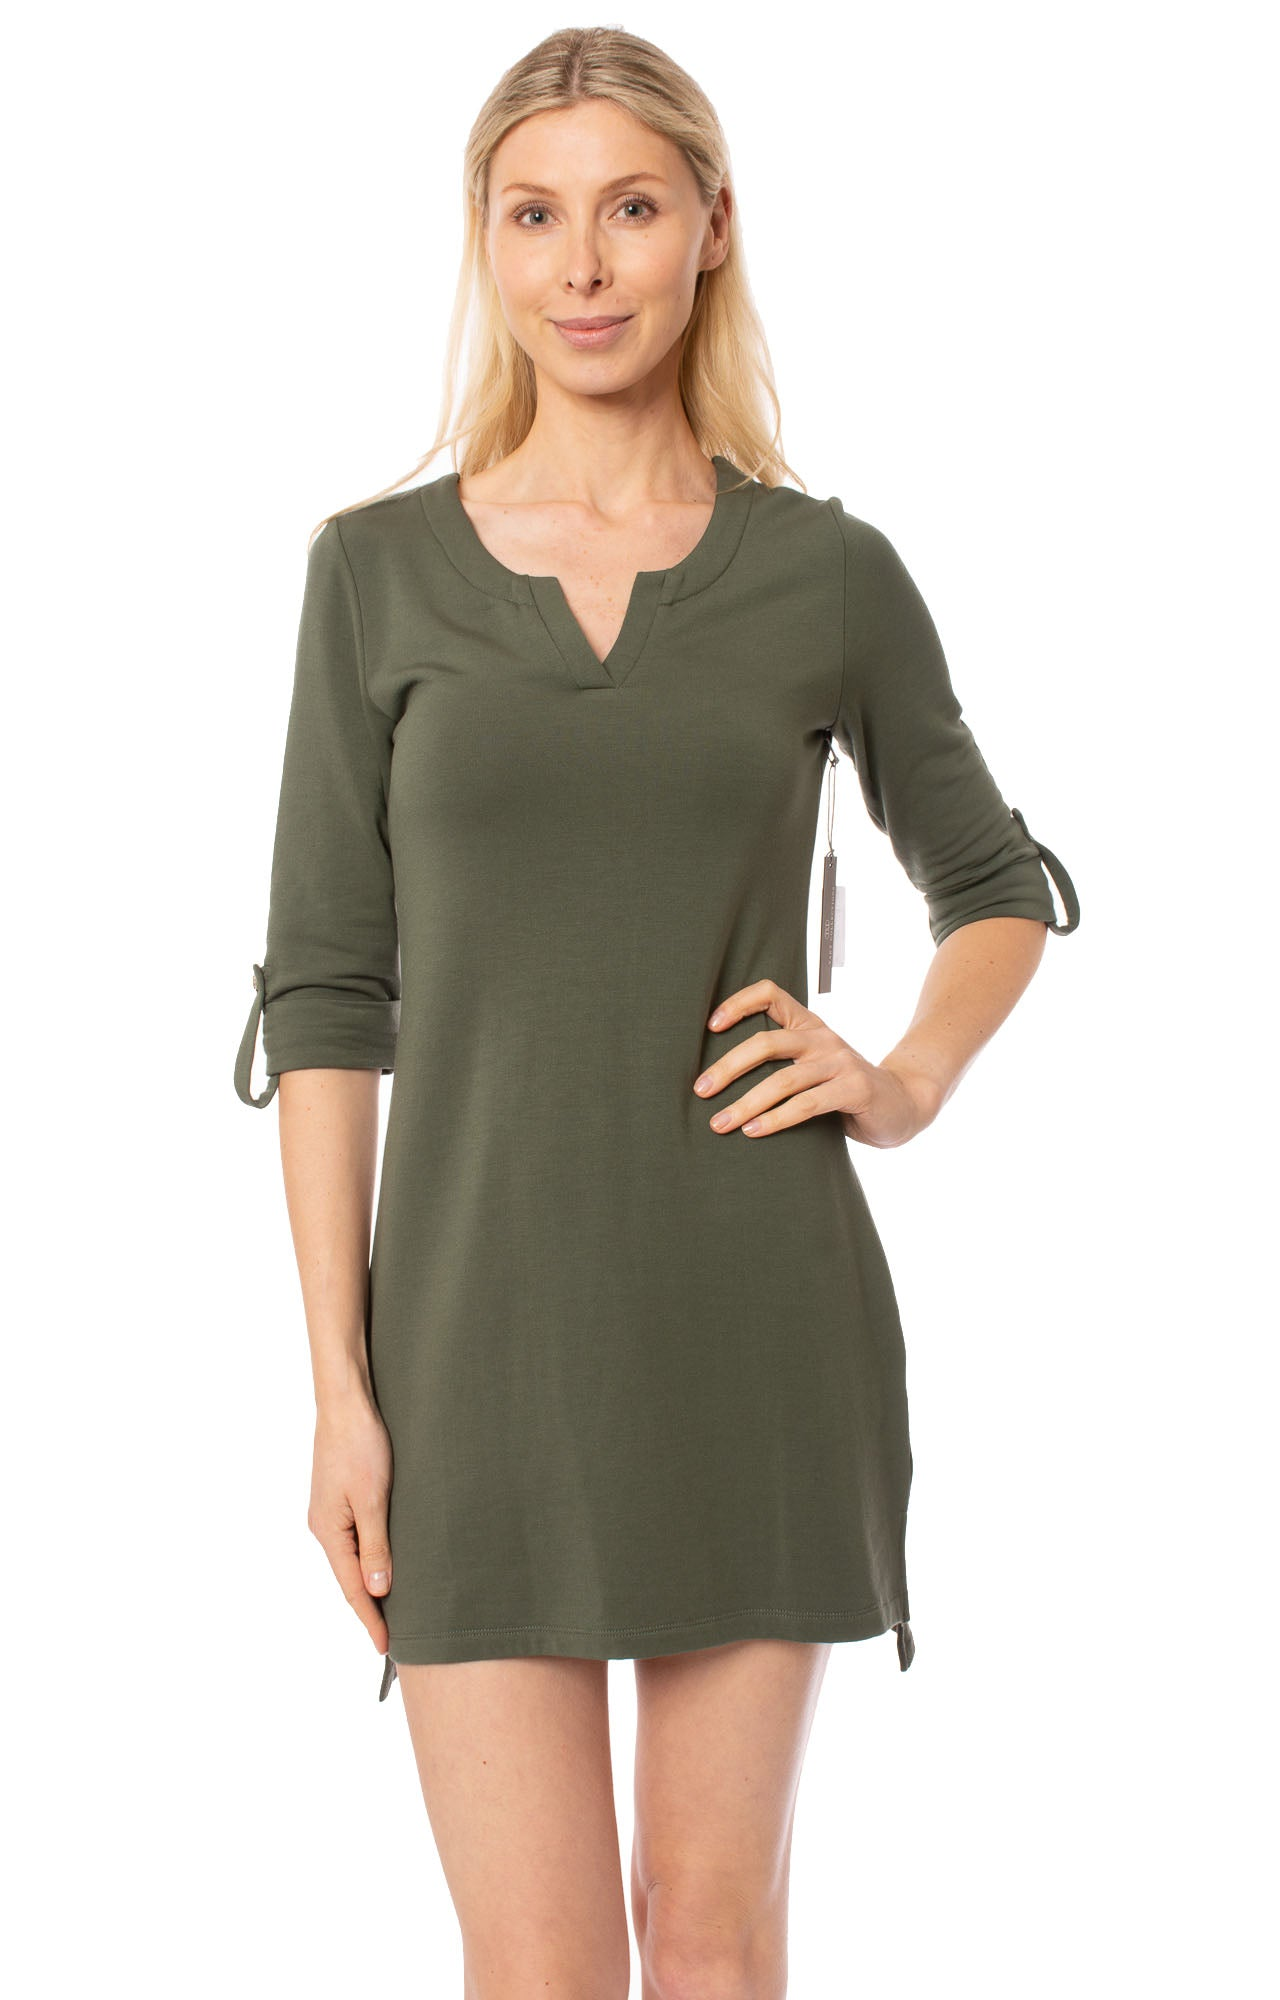 Tart Collections - Nila Dress (T11233, Olive)